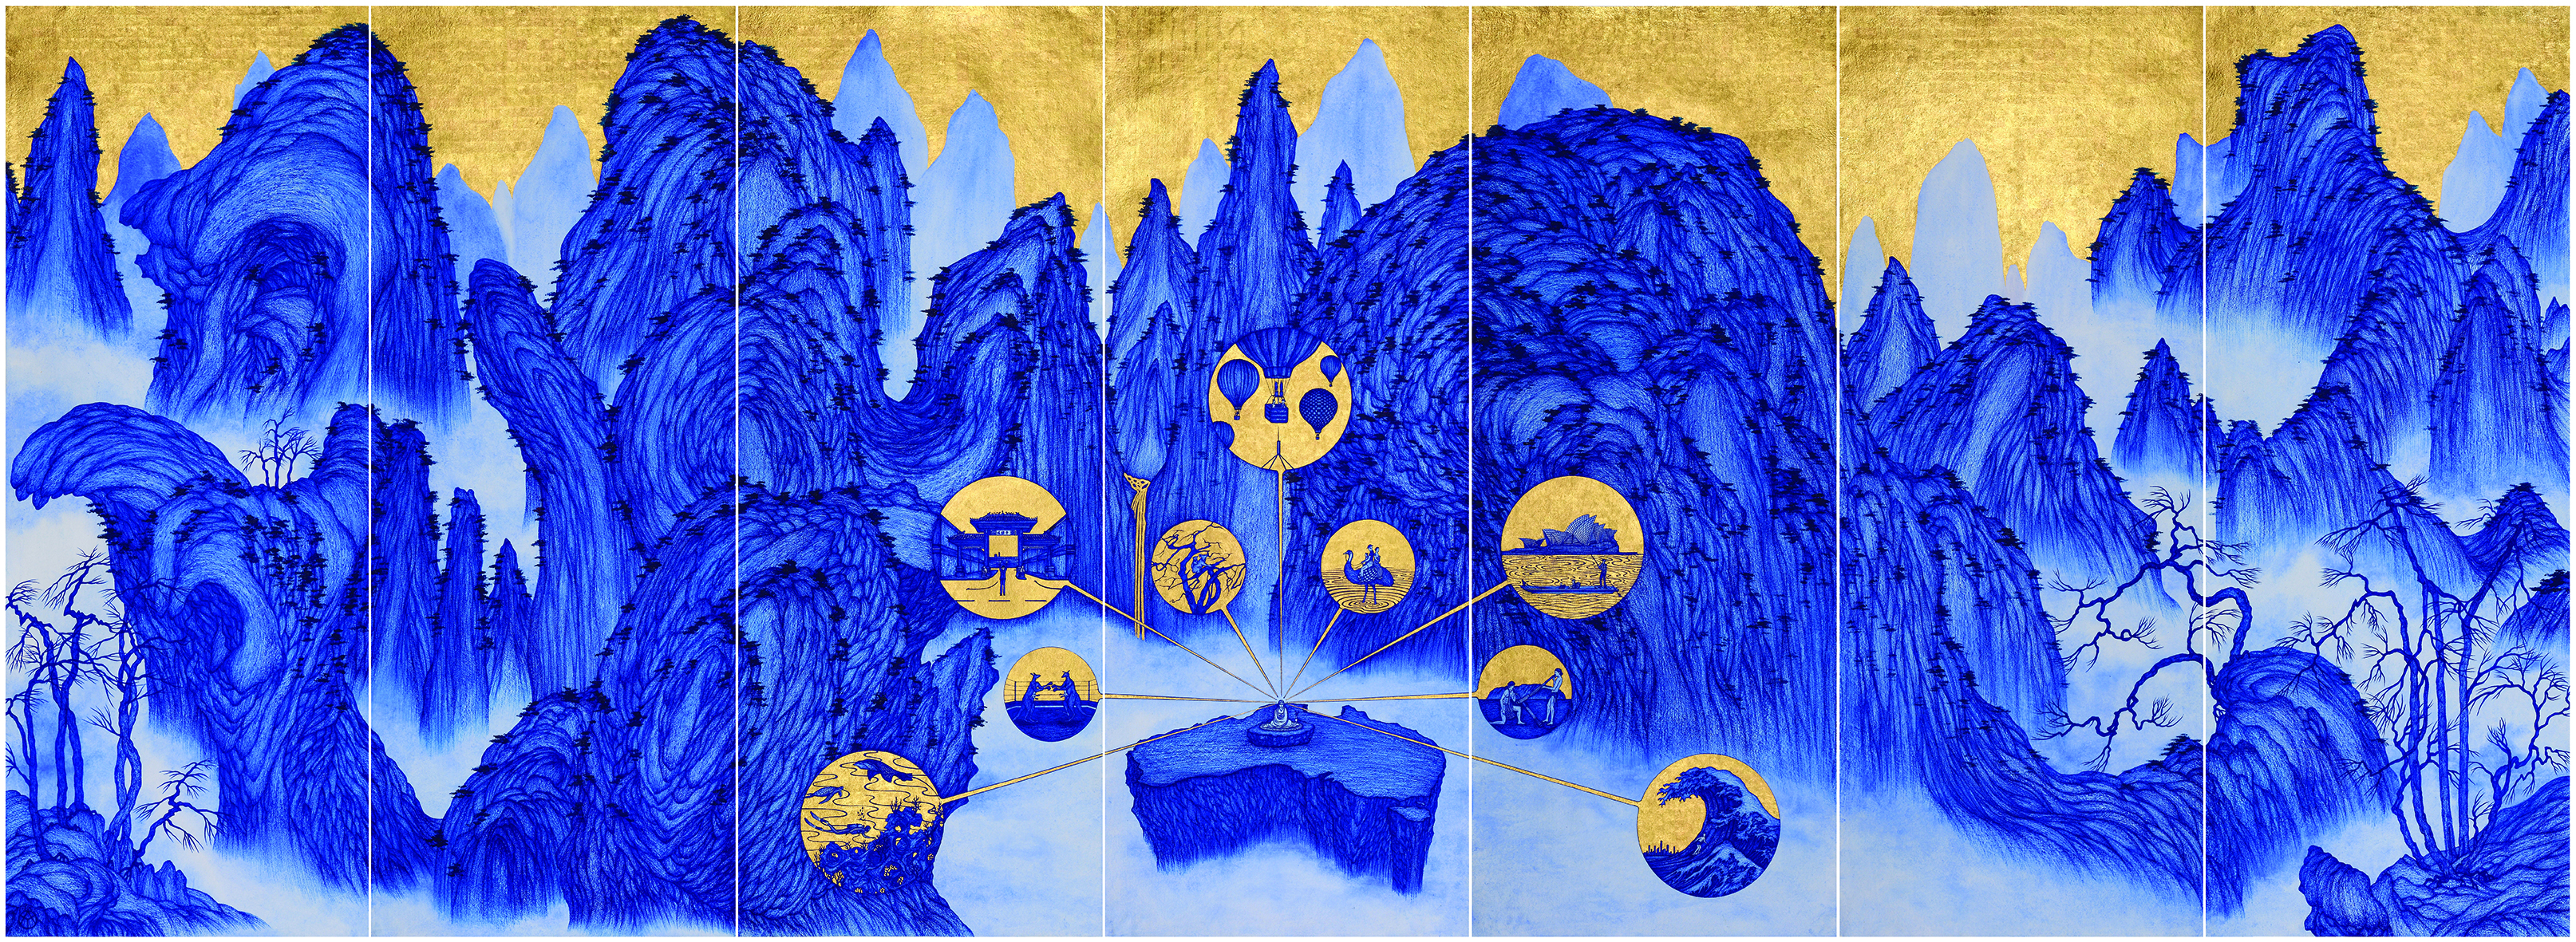 Yao's Journey to Australia, 2015, biro, blue ink with gold leaf on India handmade paper, 195 x 539 cm.